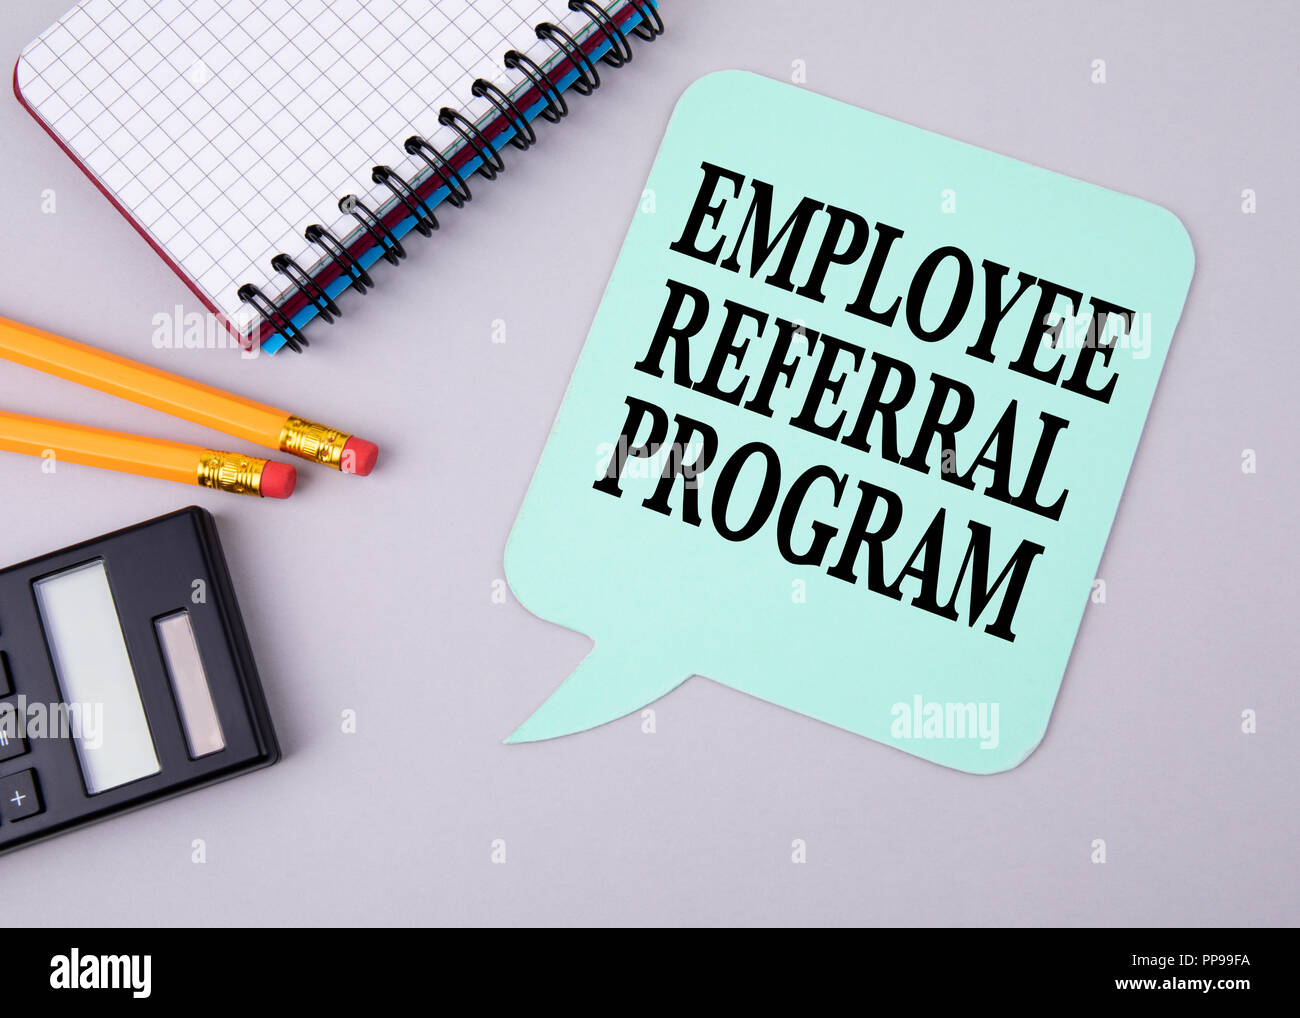 Employee Referral Program. Paper speech bubble - Stock Image